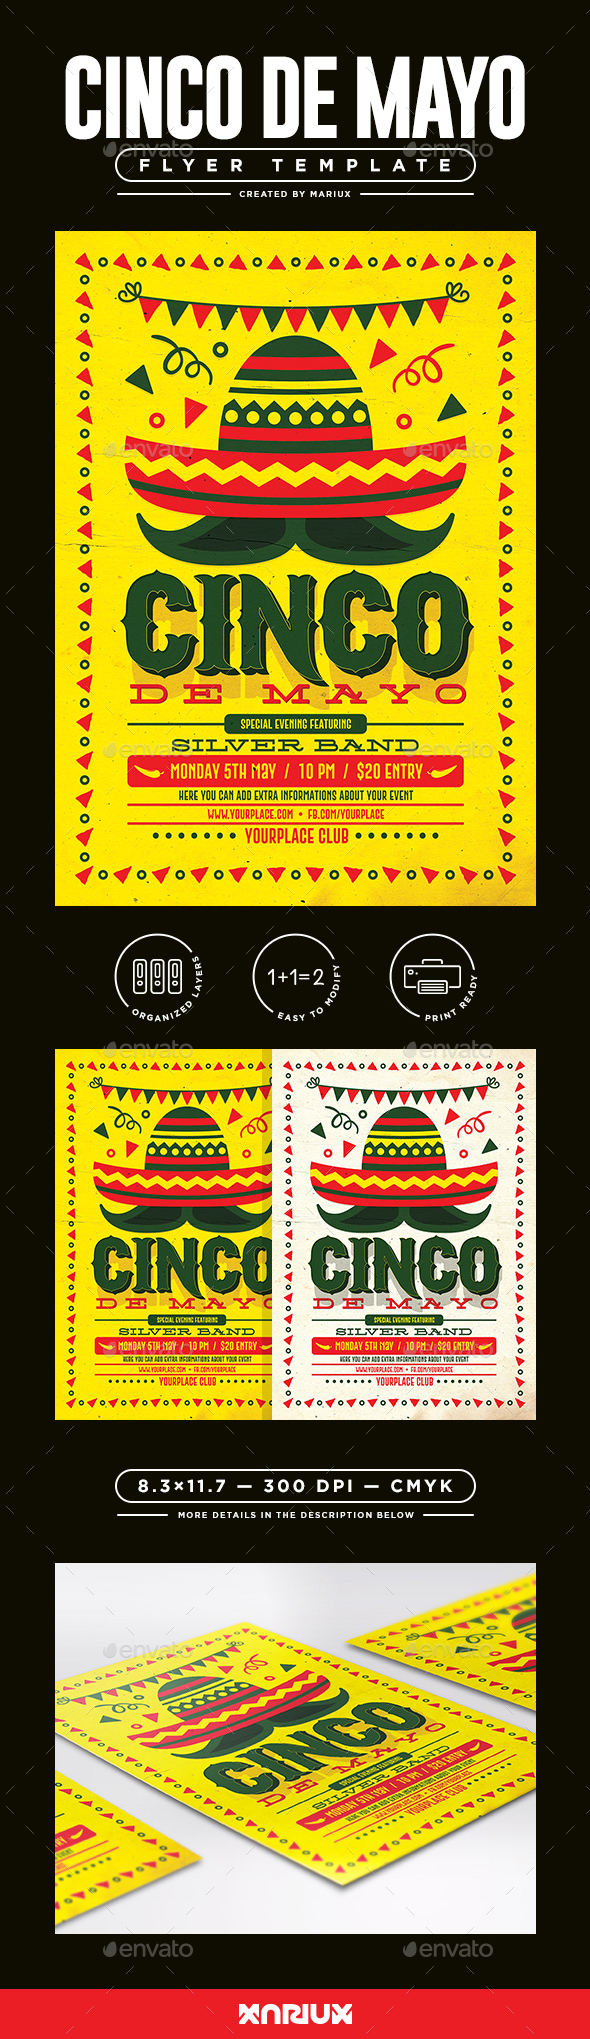 Cinco de Mayo Flyer/Poster - Events Flyers